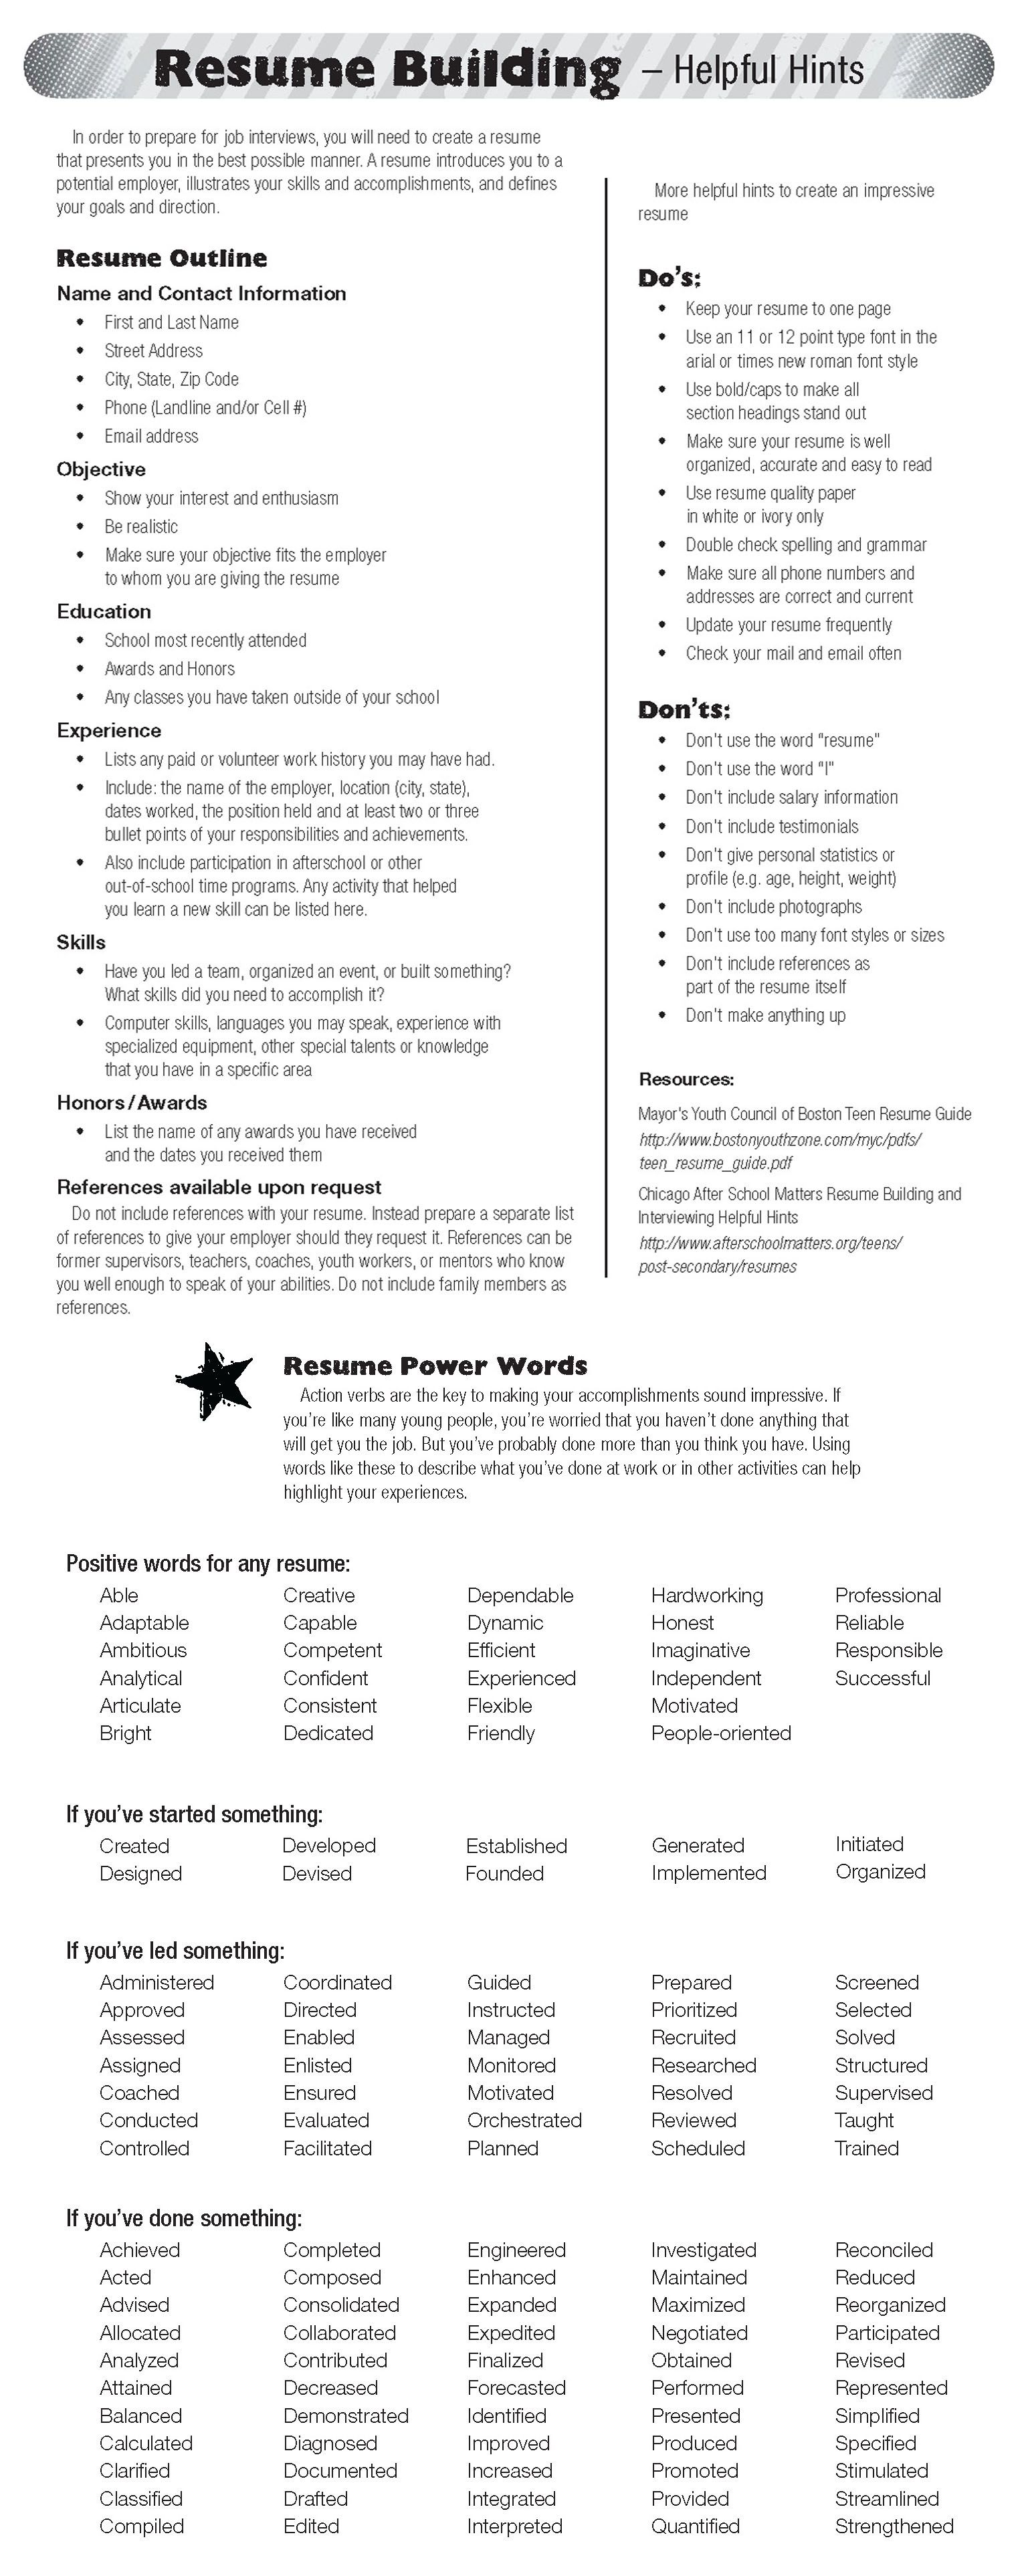 check out todays resume building tips resume resumepowerwords